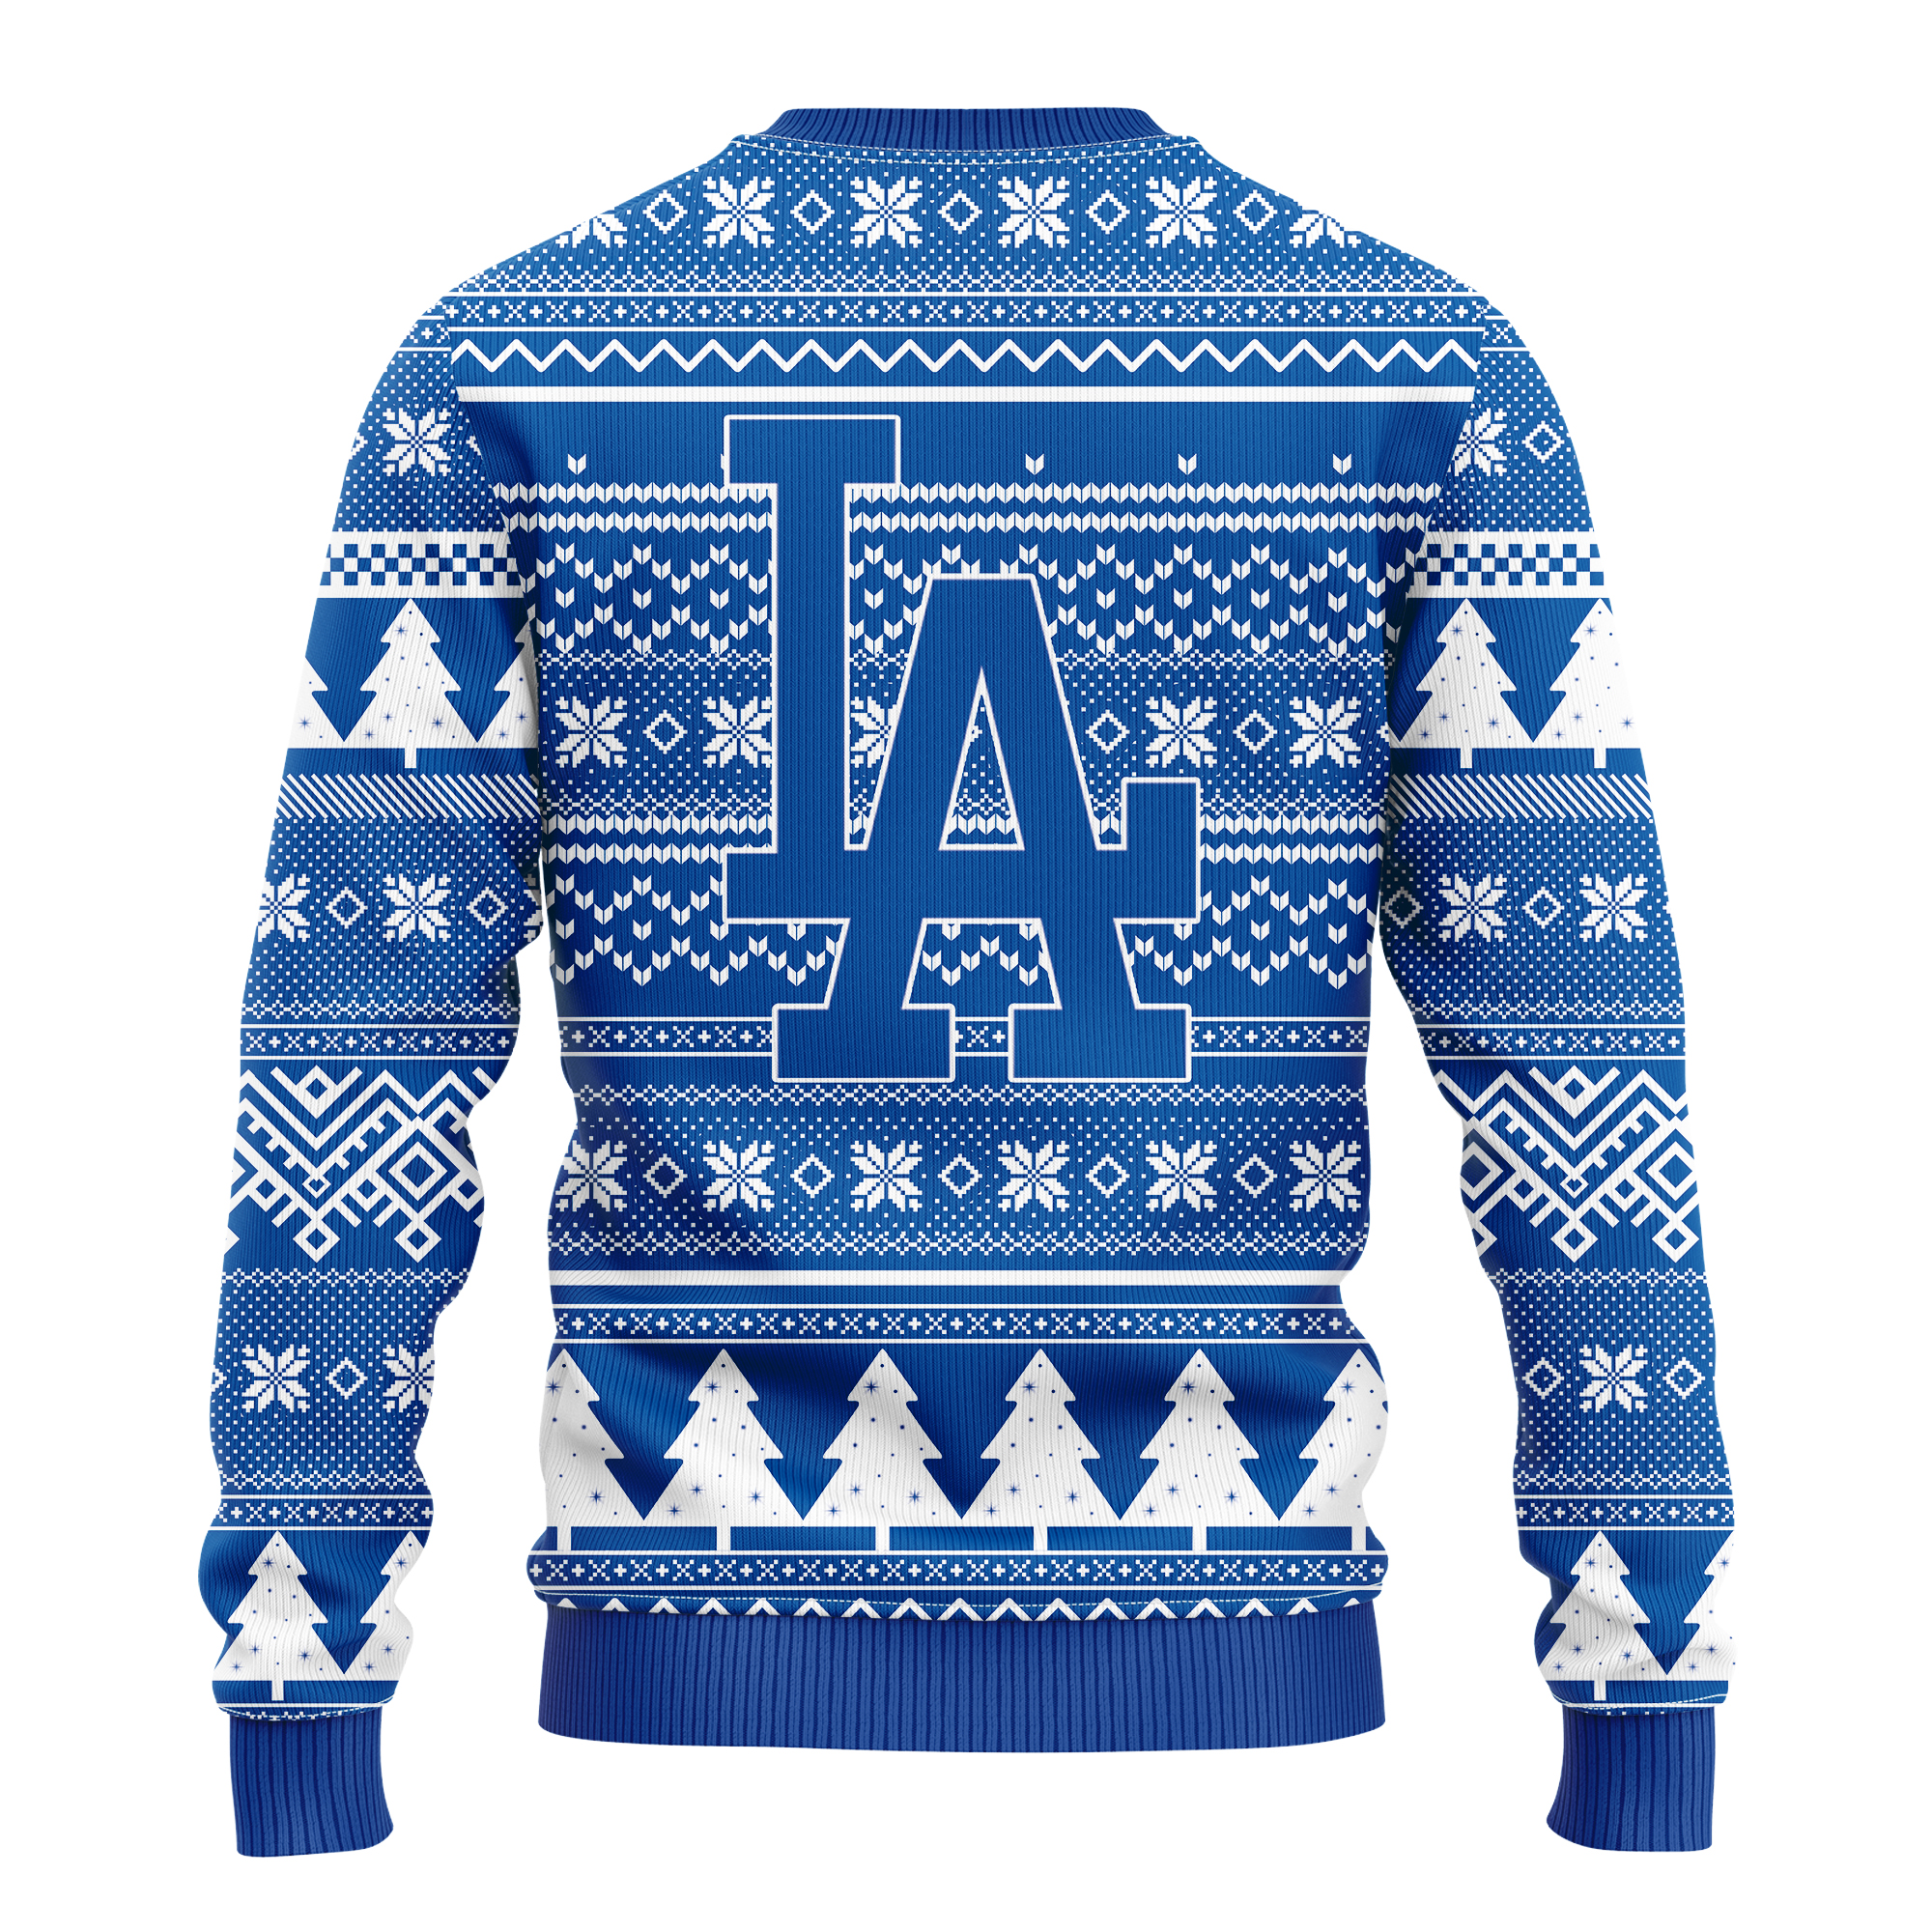 los angeles dodgers world champions ugly sweater 4